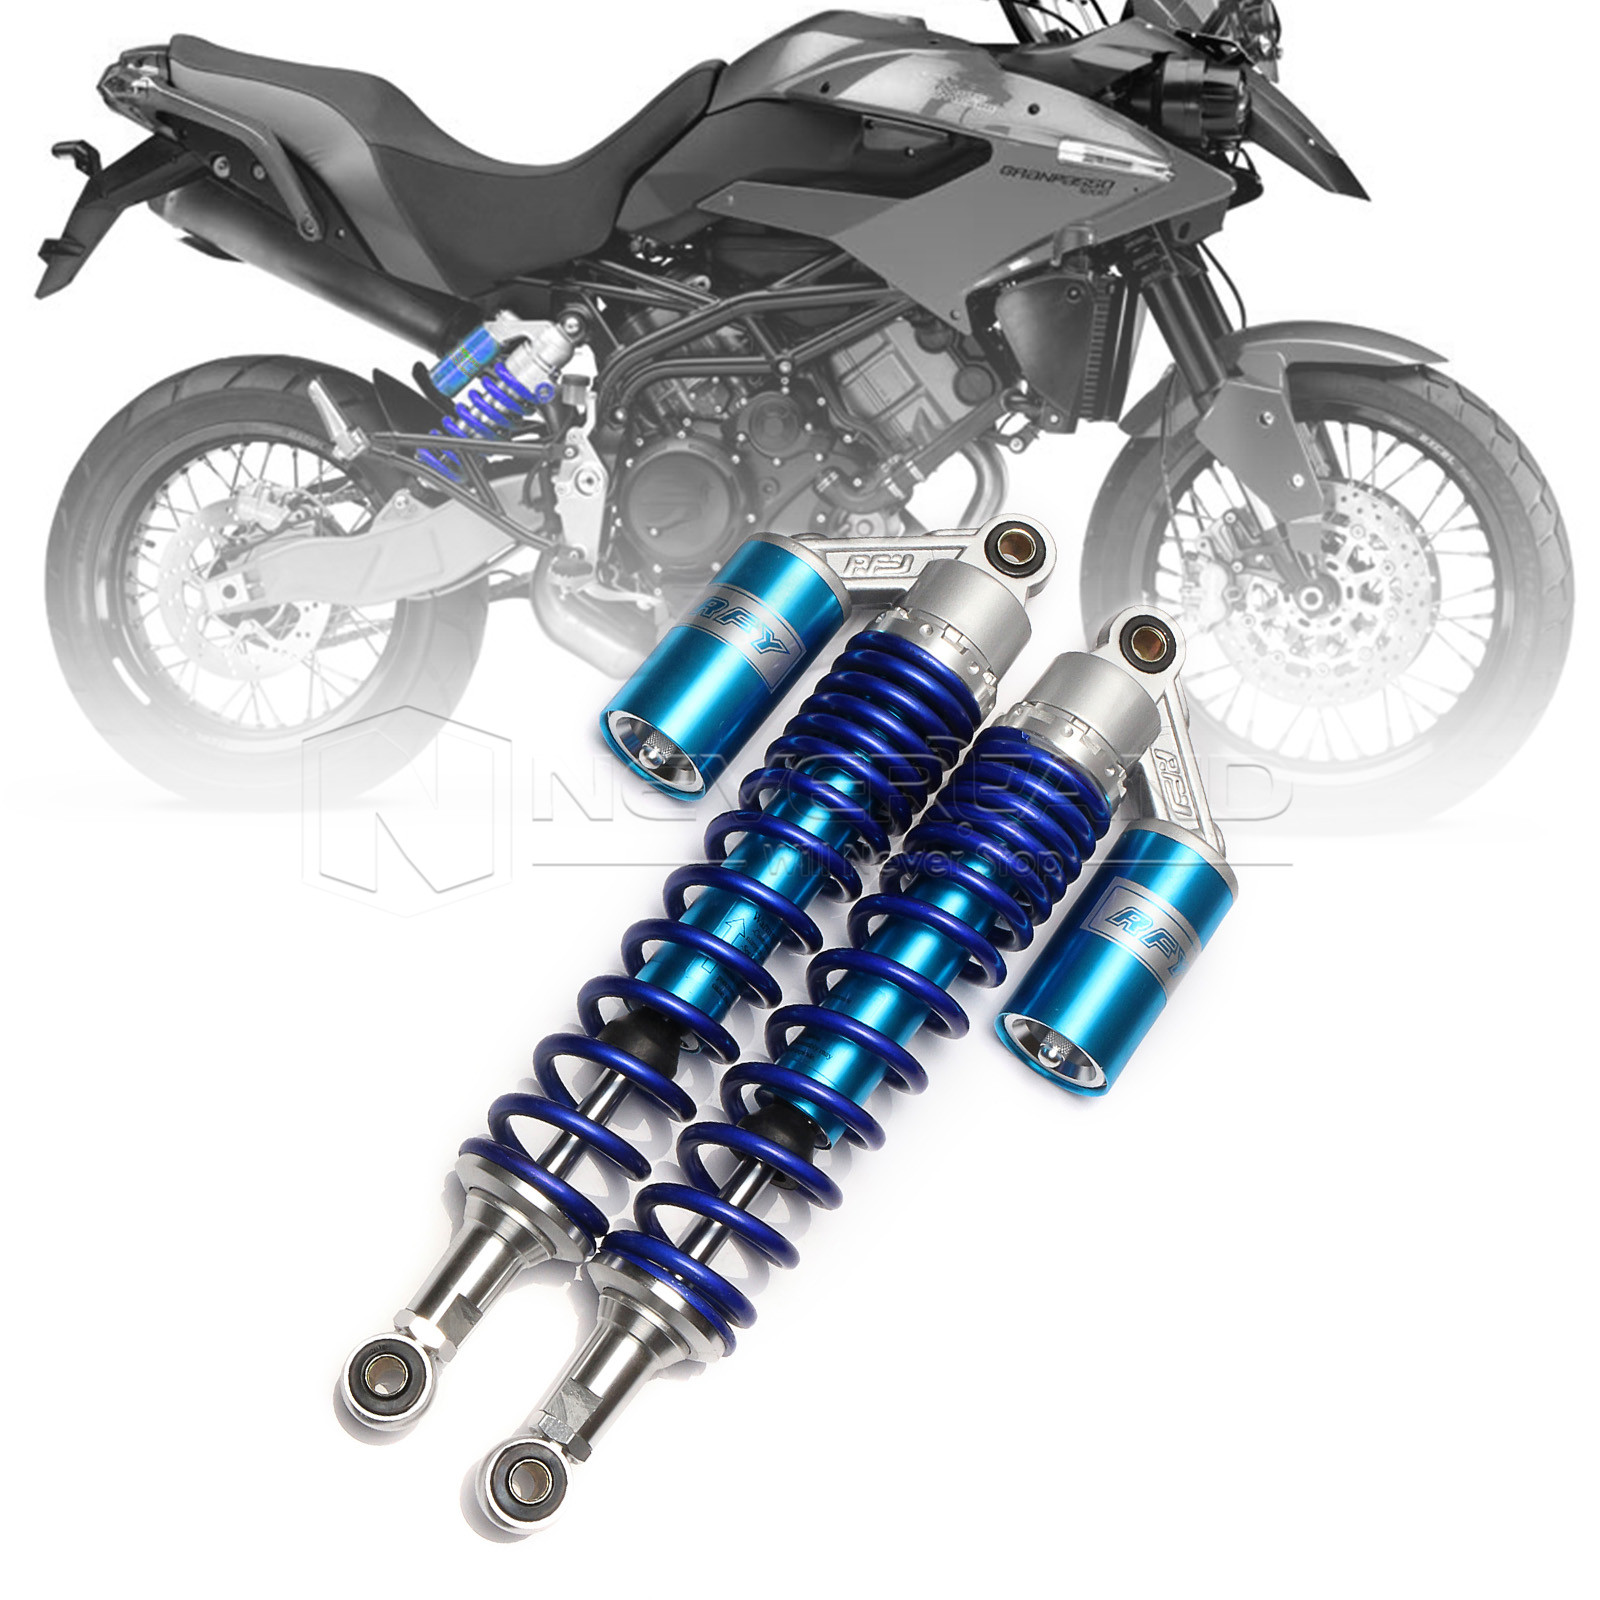 Universal 15 3/4 400mm Motorcycle Air Shock Absorber Rear Suspension Spring Damper Replacement For Yamaha YFZ450 Blue D25 for motorcycle yamaha yfz450 yfz 450 black motorcycle bike rear 1 3 5 lowering kit